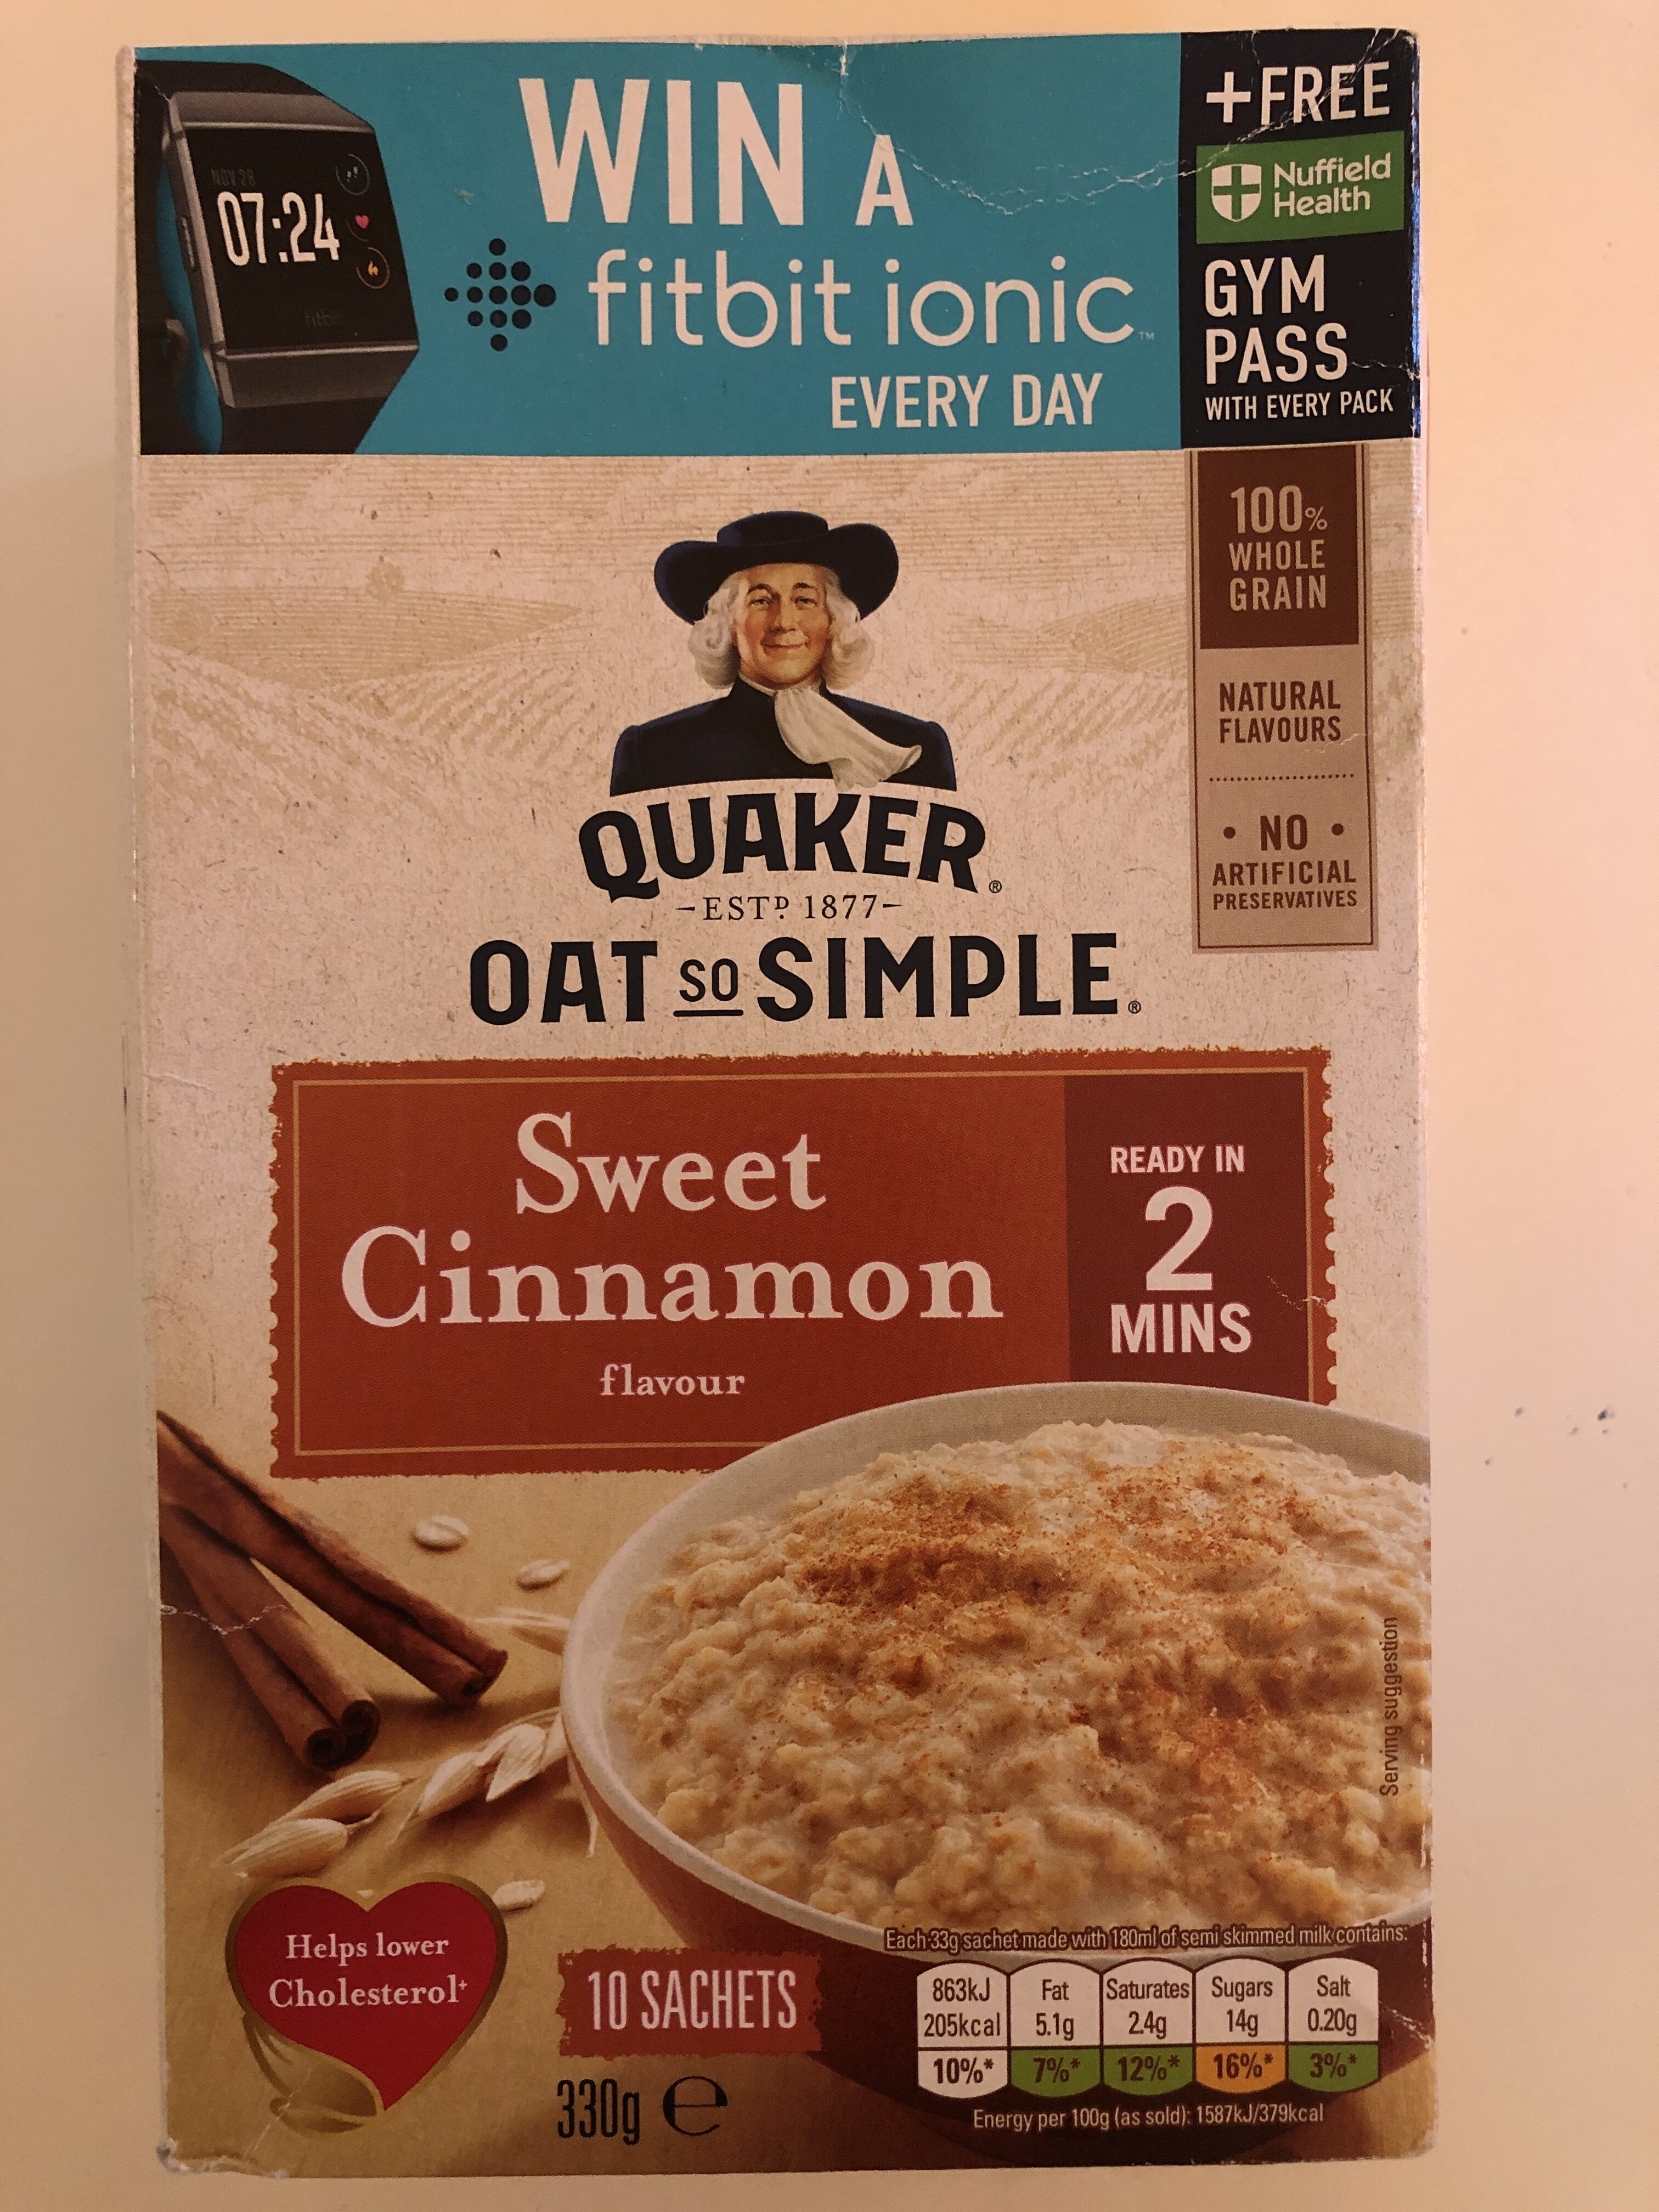 QUAKER OAT so SIMPLE Sweet Cinnamon - Product - en